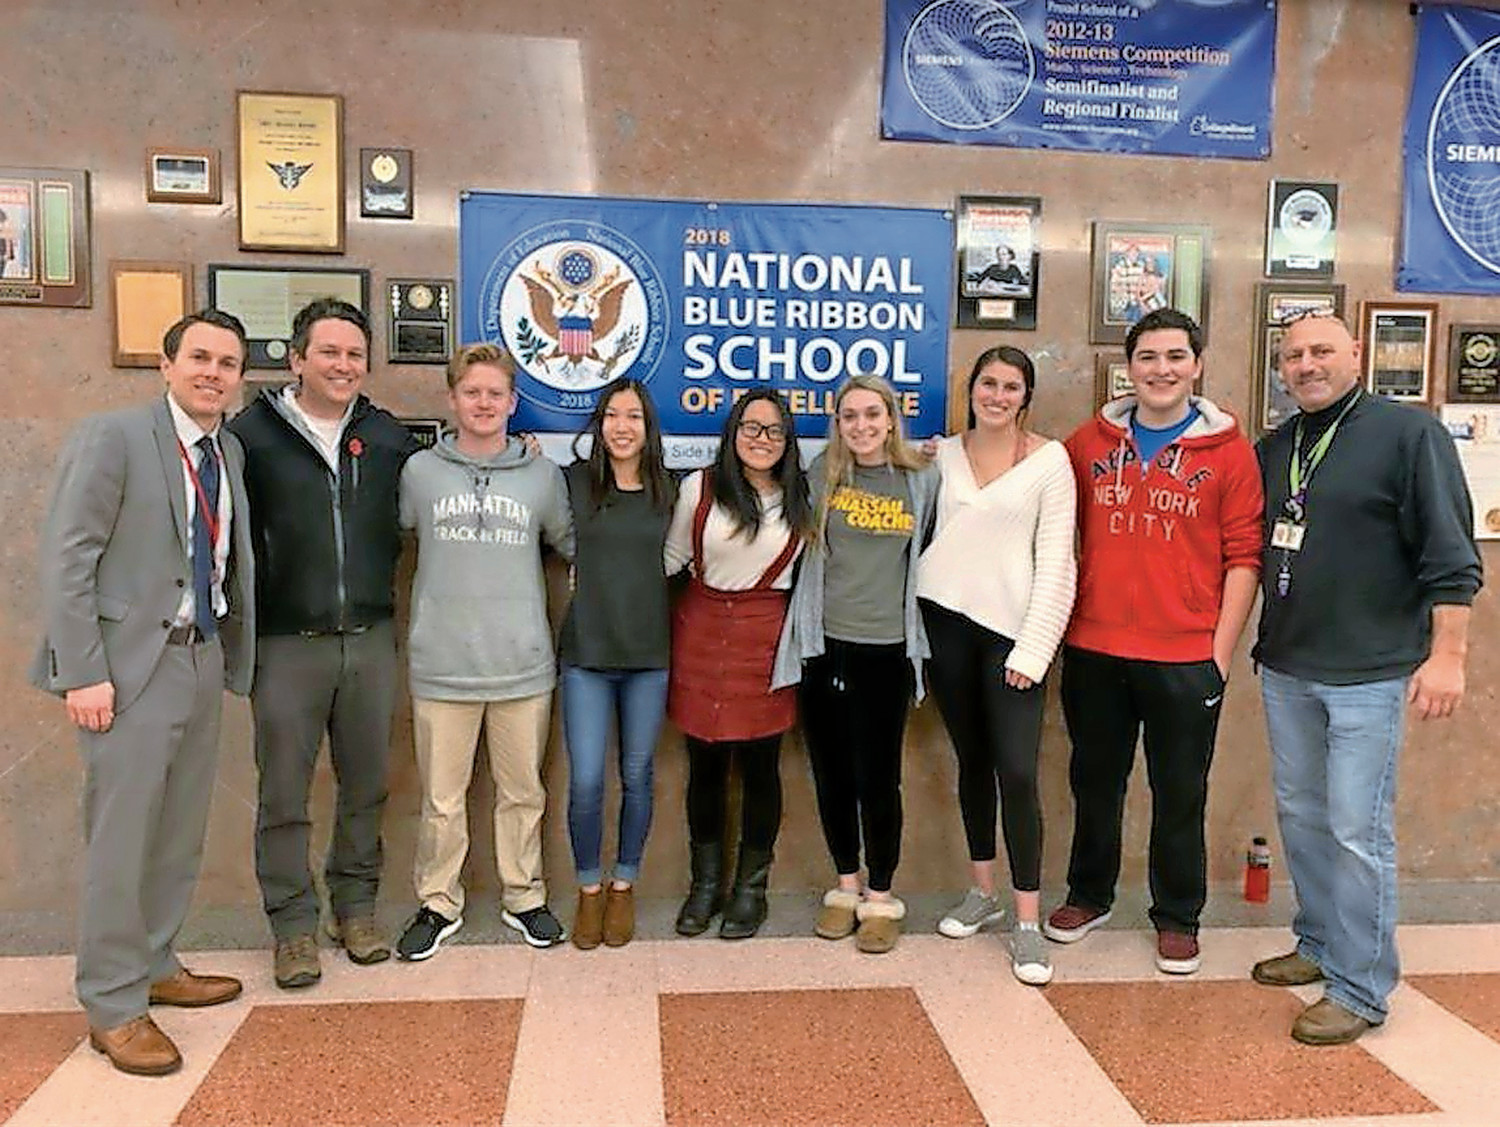 Patrick Walsh, left, with Todd Russo, to his left, and Herb Weiss, far right, who lead South Side's science research program, joined Regeneron applicants Jack McGowan, Kellien Peritz, Samantha Ying, Avery Goldberg, Emma Sueiro and Connor Giovanniello.